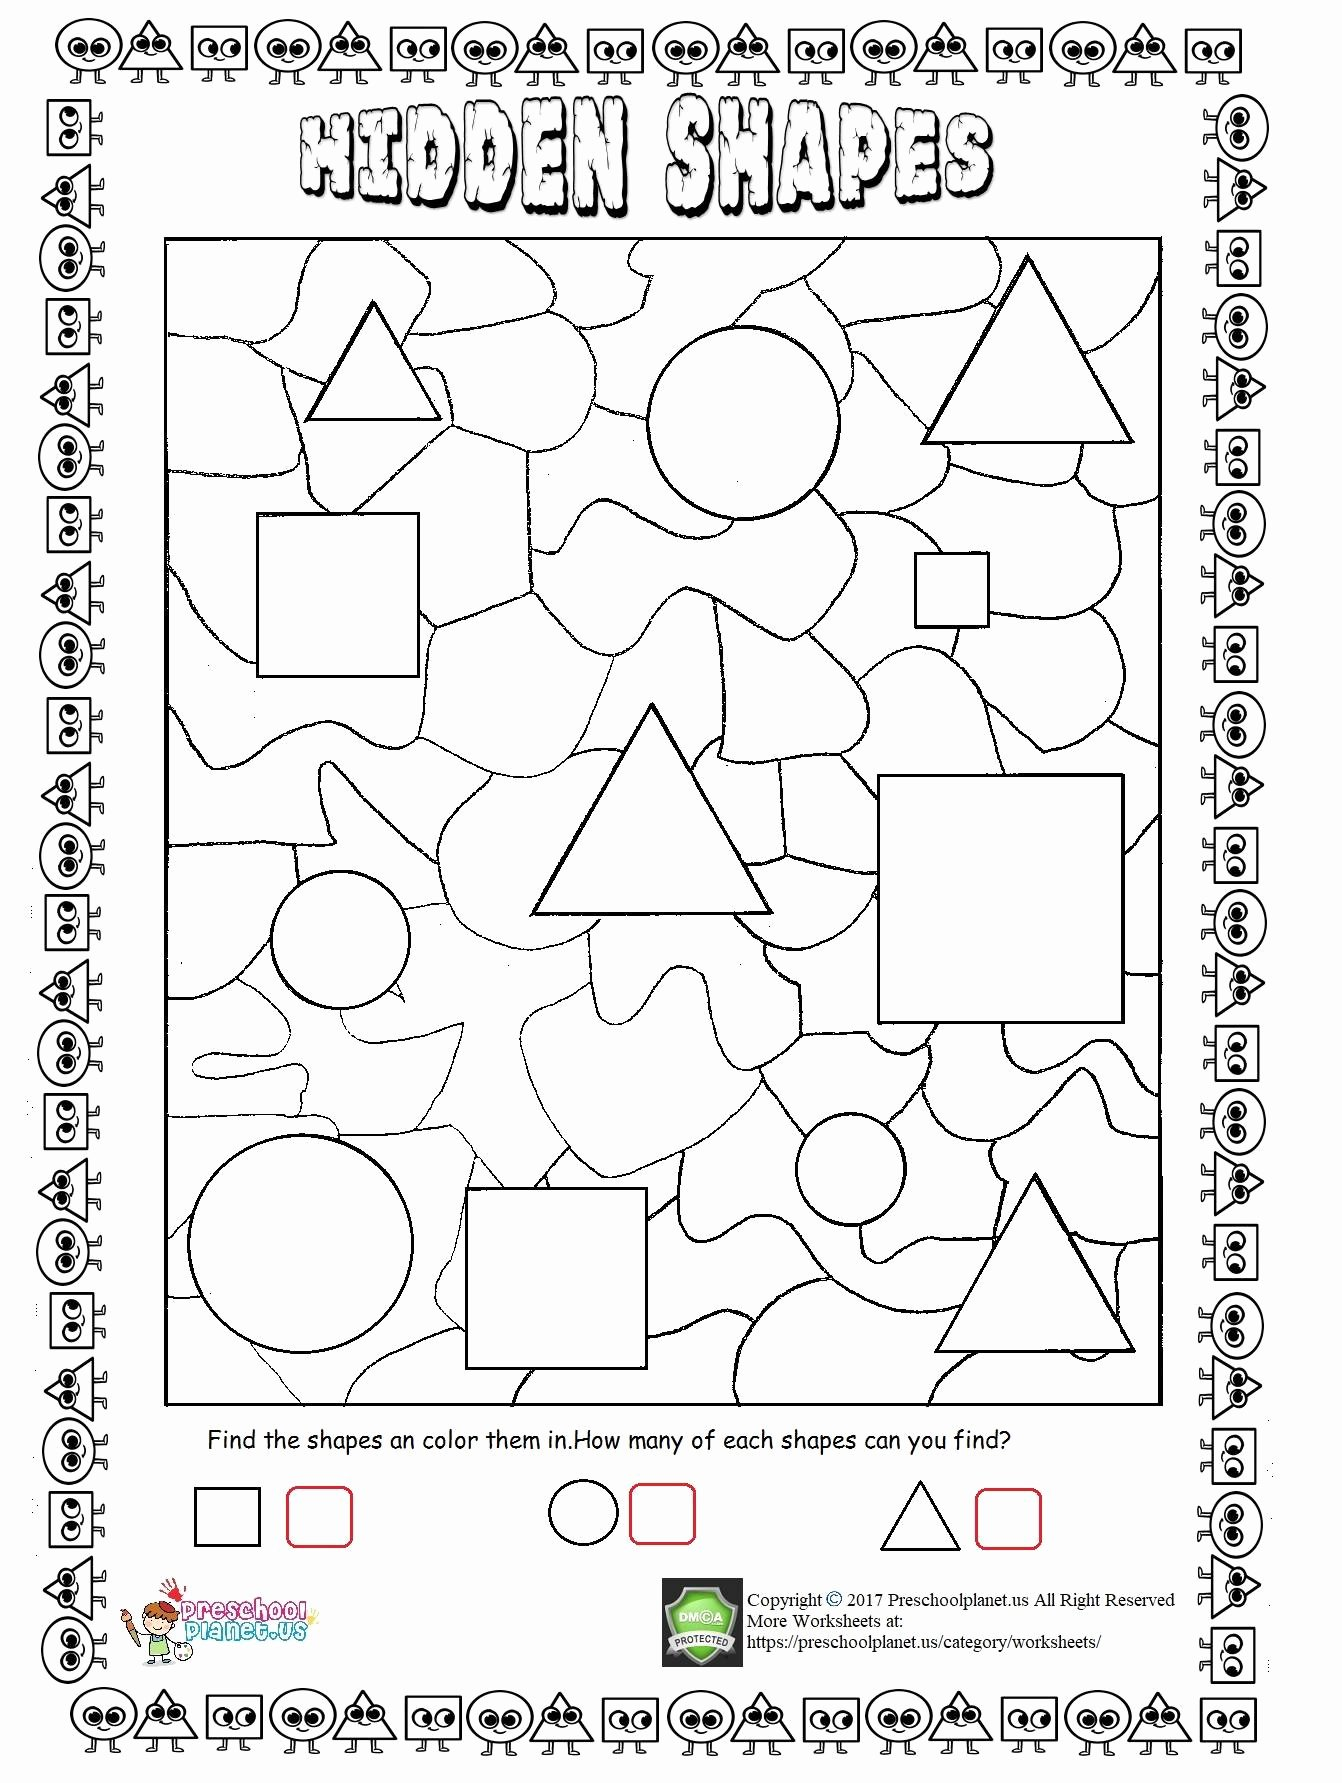 Spring Worksheets for Preschoolers Fresh Worksheets Free Printable Spring Worksheet for Kids